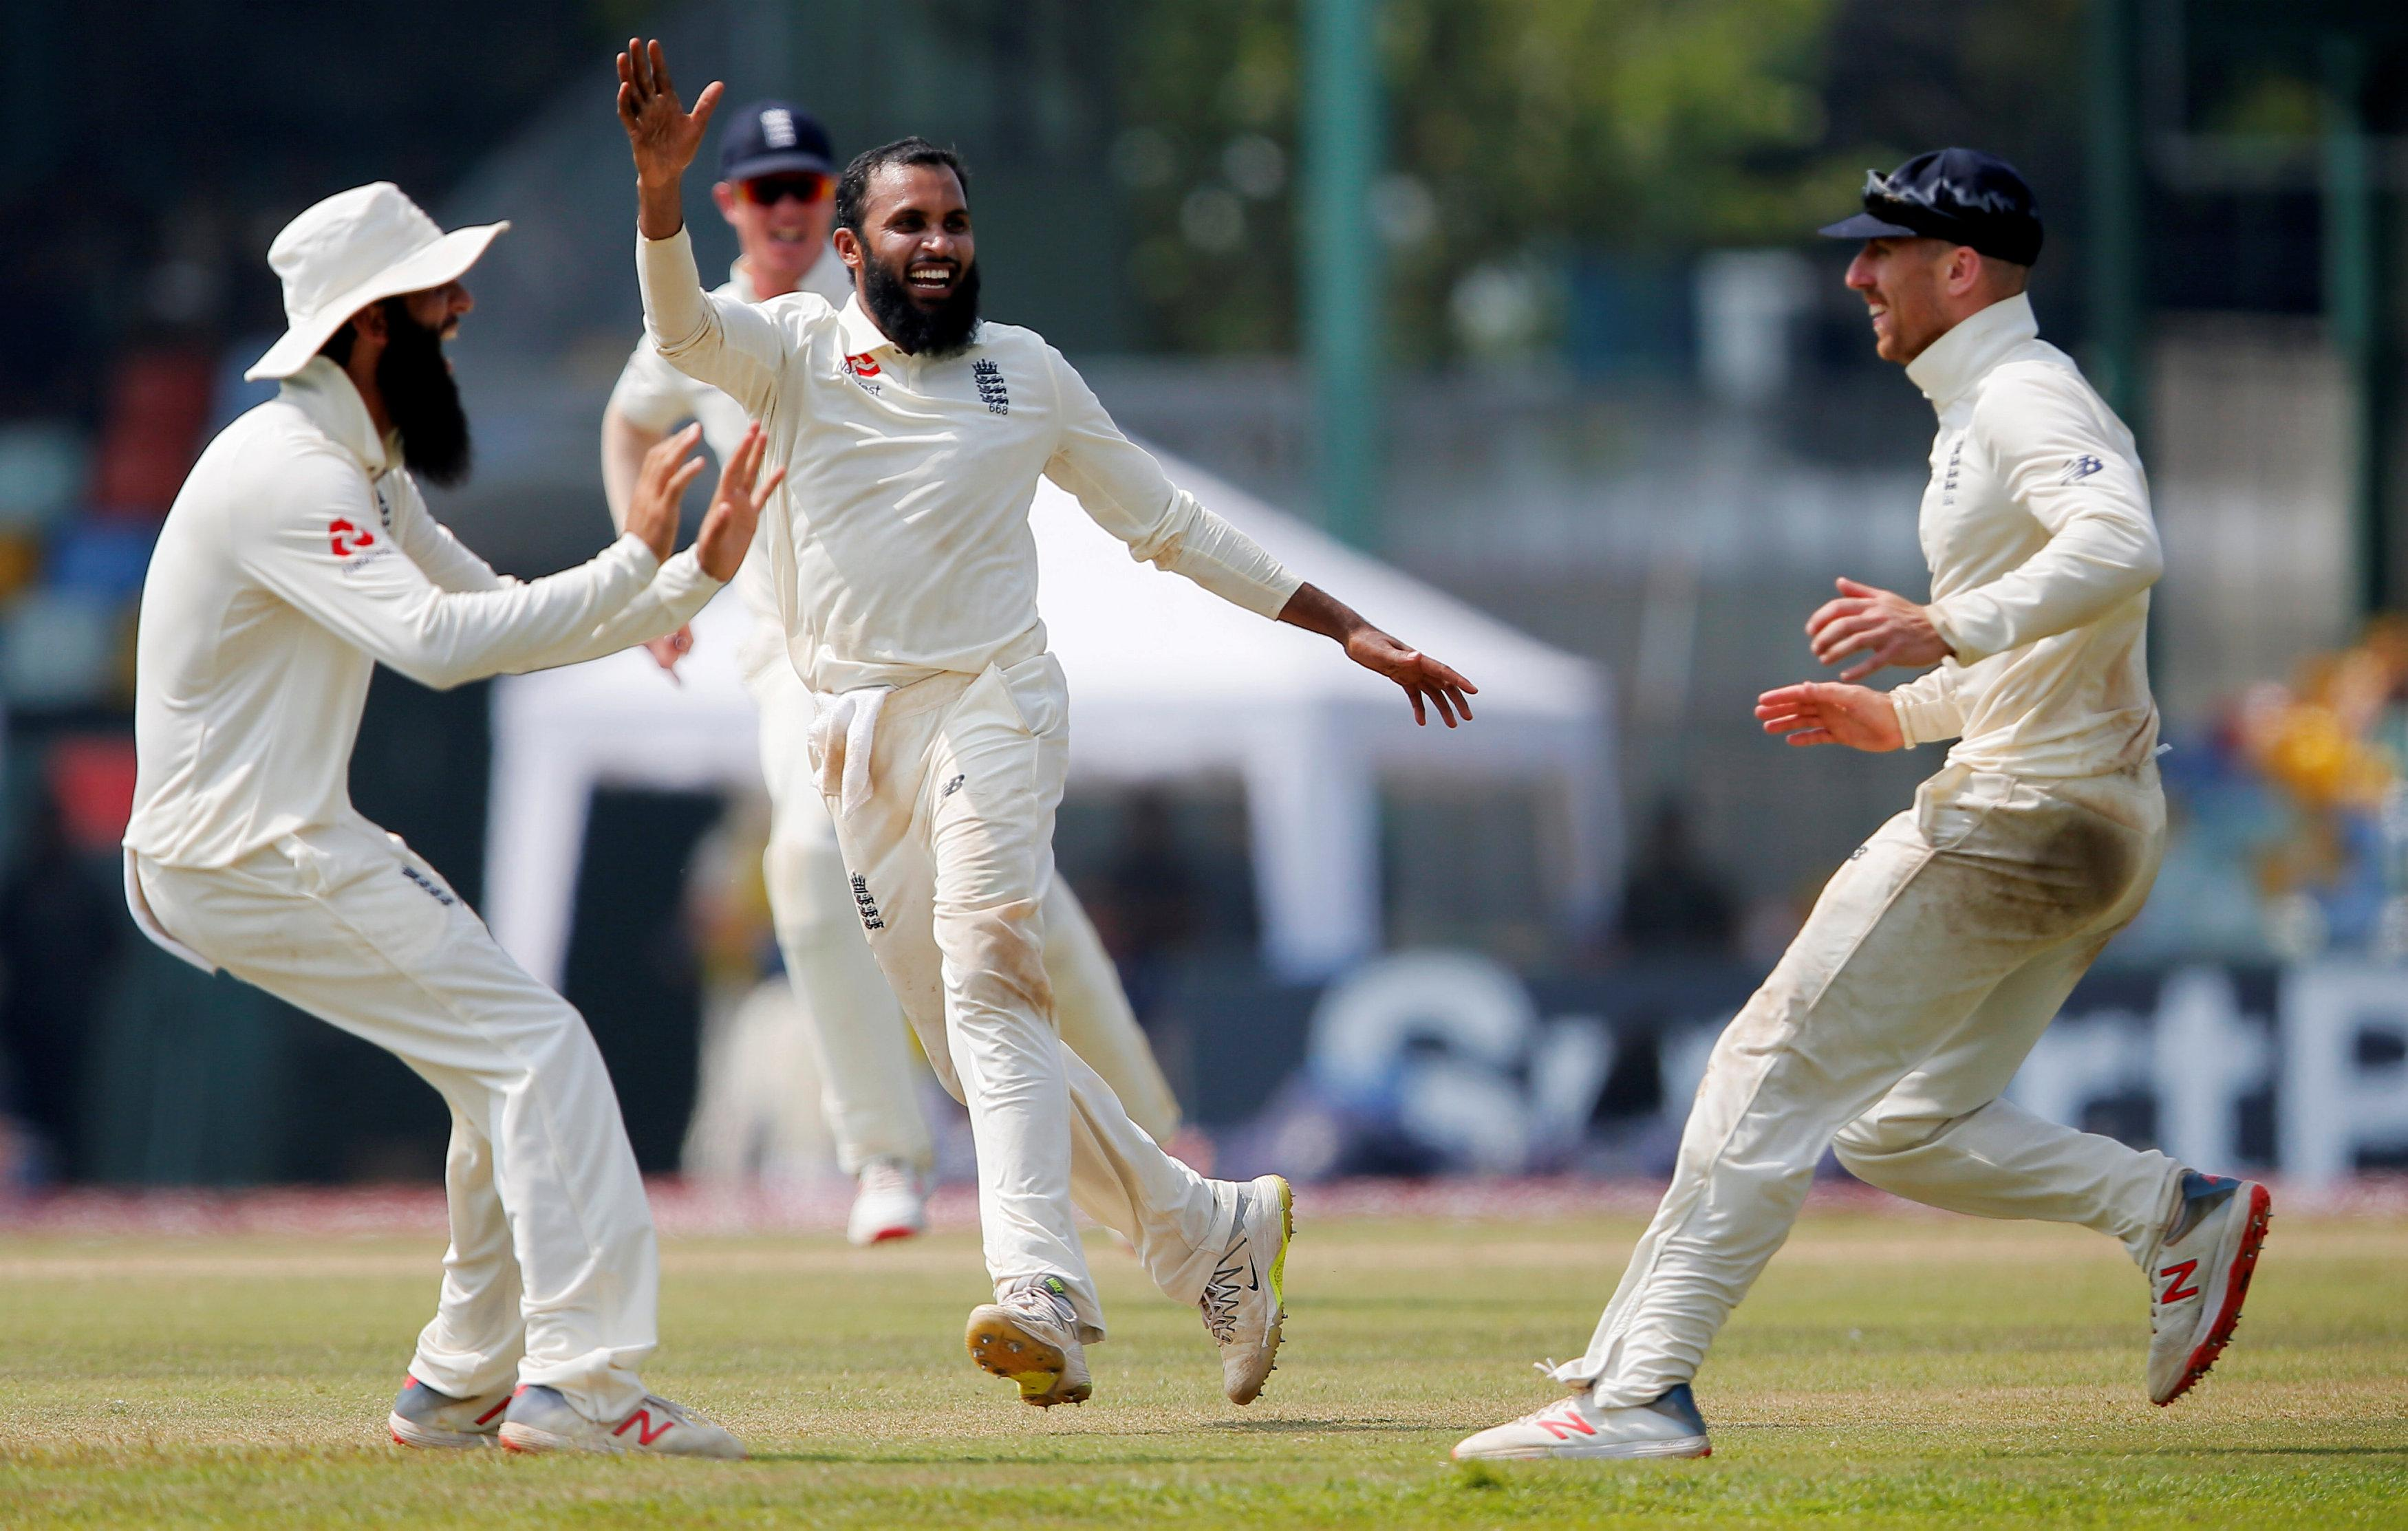 England ultimately completed the Test series whitewash